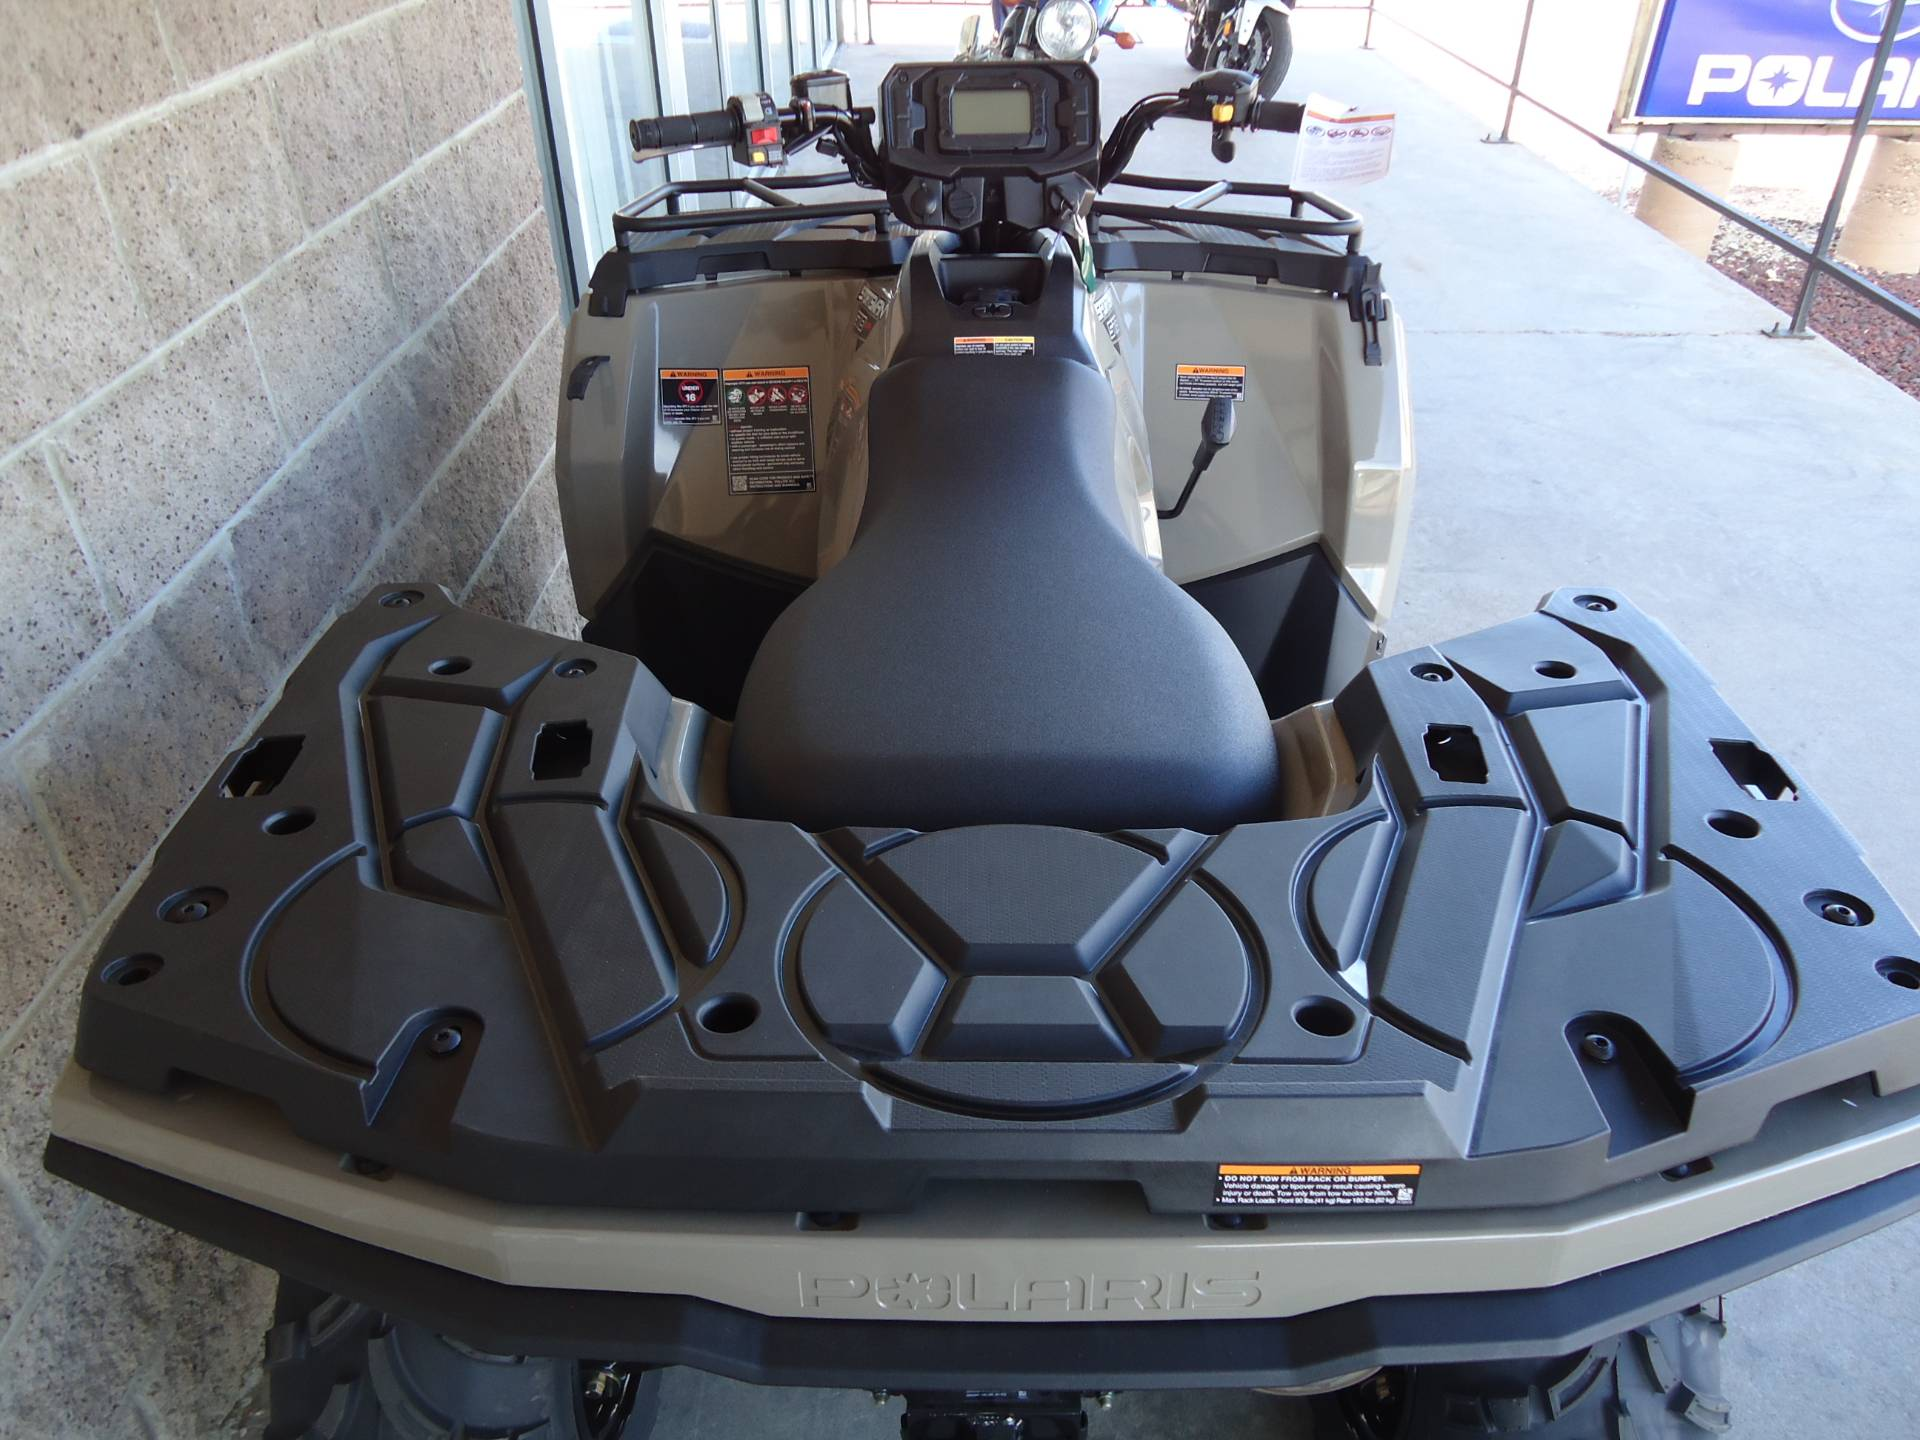 2021 Polaris Sportsman 570 in Denver, Colorado - Photo 17